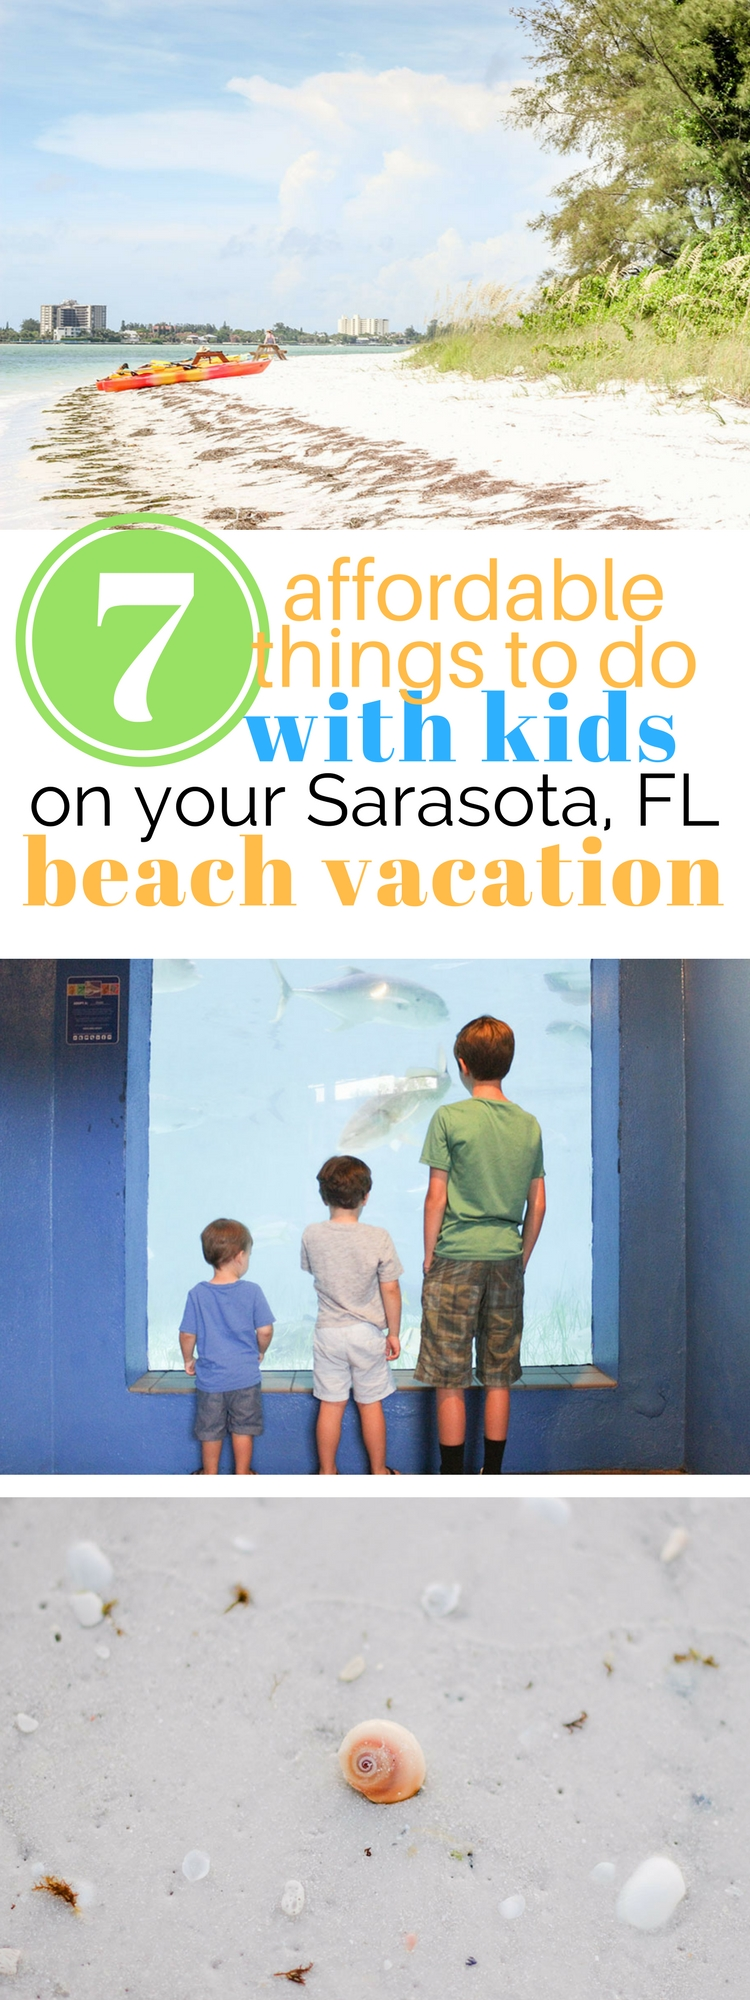 7 affordable things to do with kids on your Sarasota, FL beach vacation